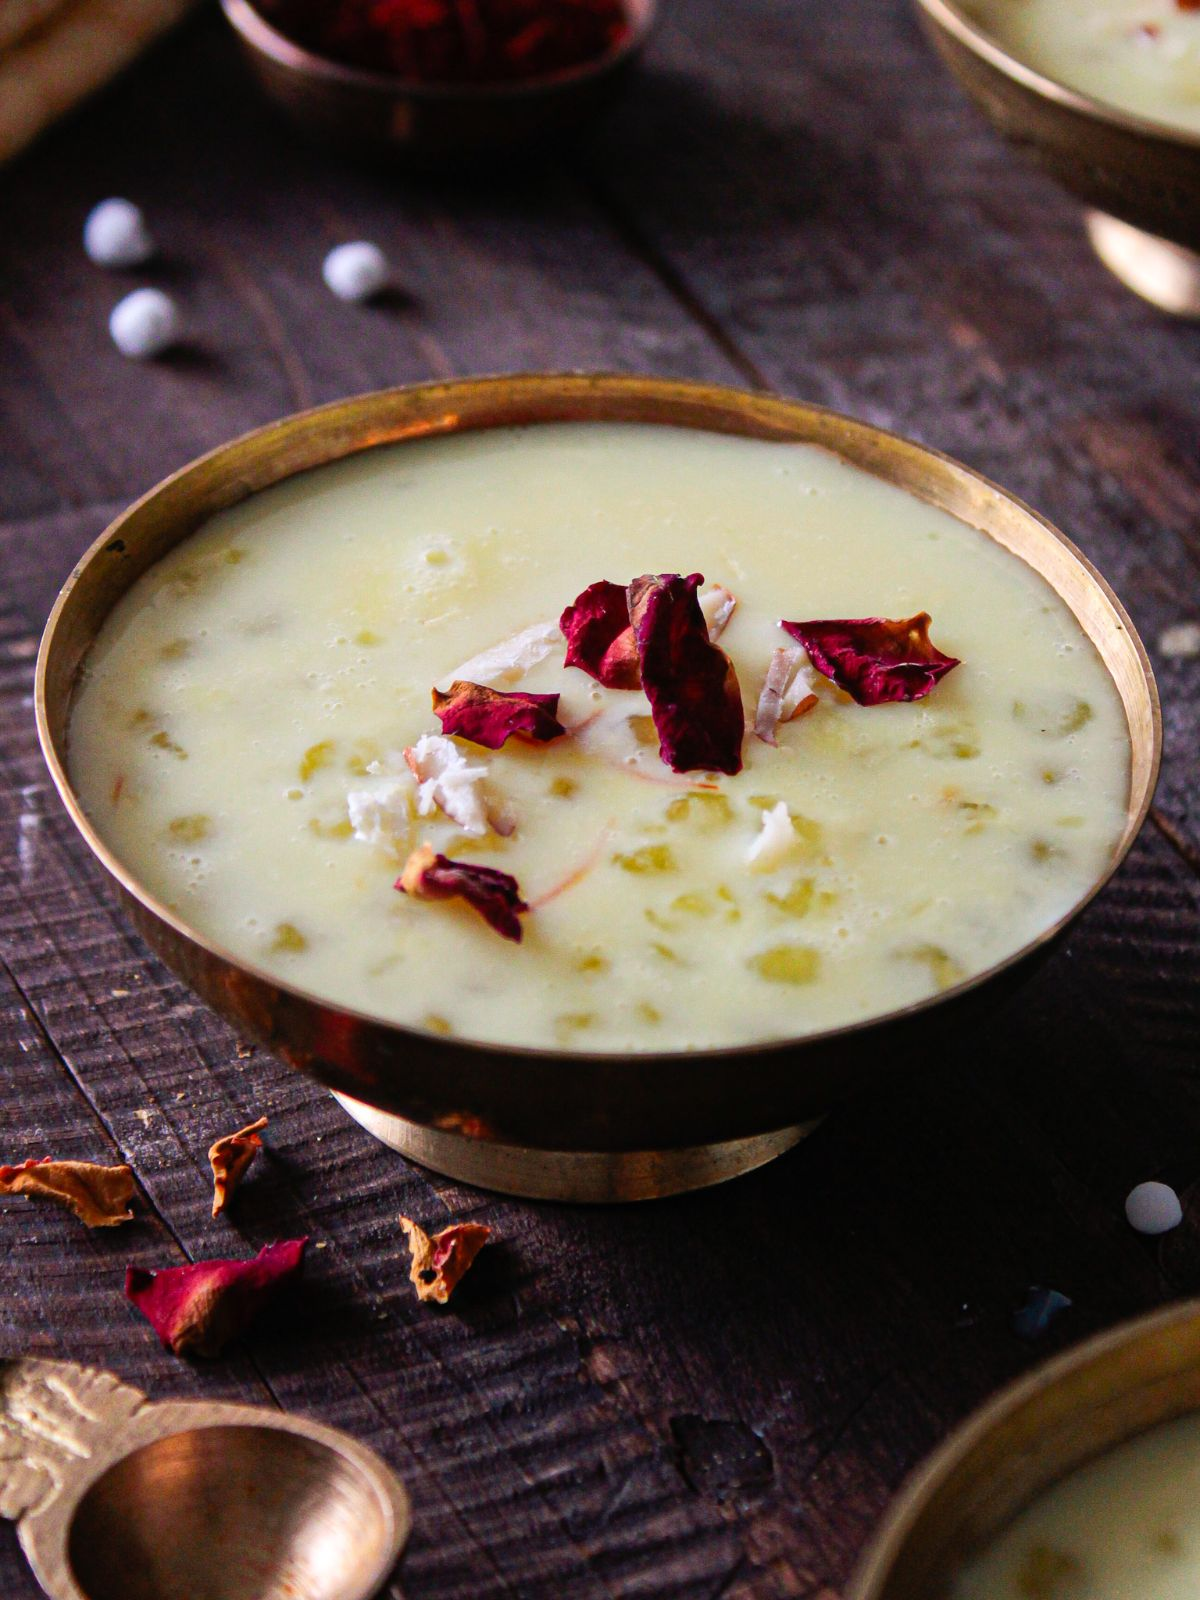 Gold bowl on table filled with tapioca kheer topped with rose petals